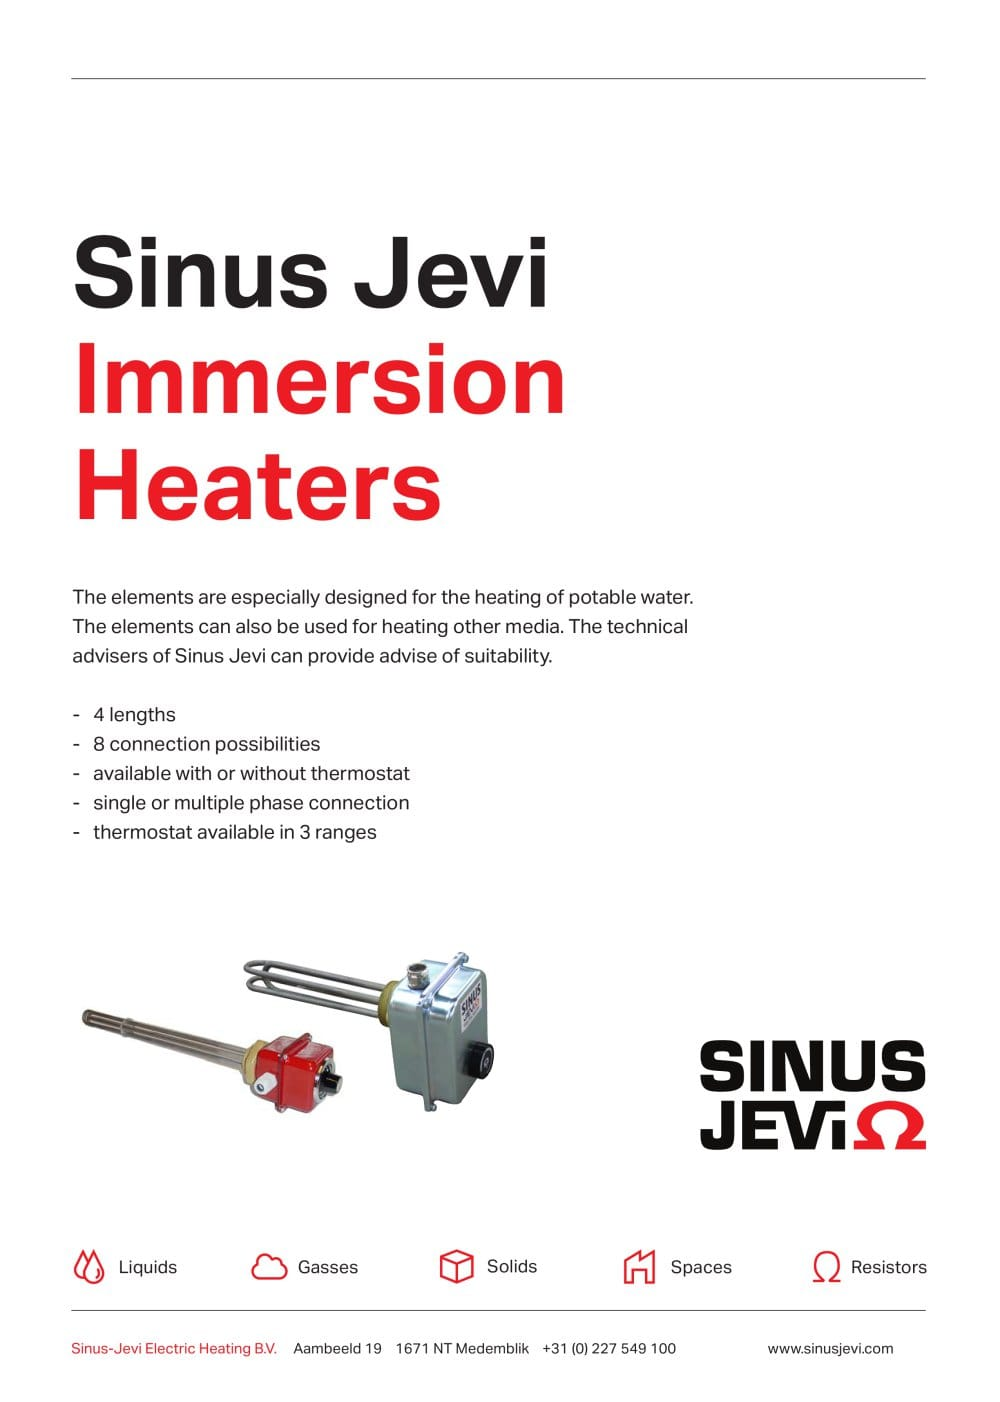 Immersion Heaters Standard Sinus Jevi Electric Heating Bv Cartridge Heater Wiring Diagram 1 10 Pages